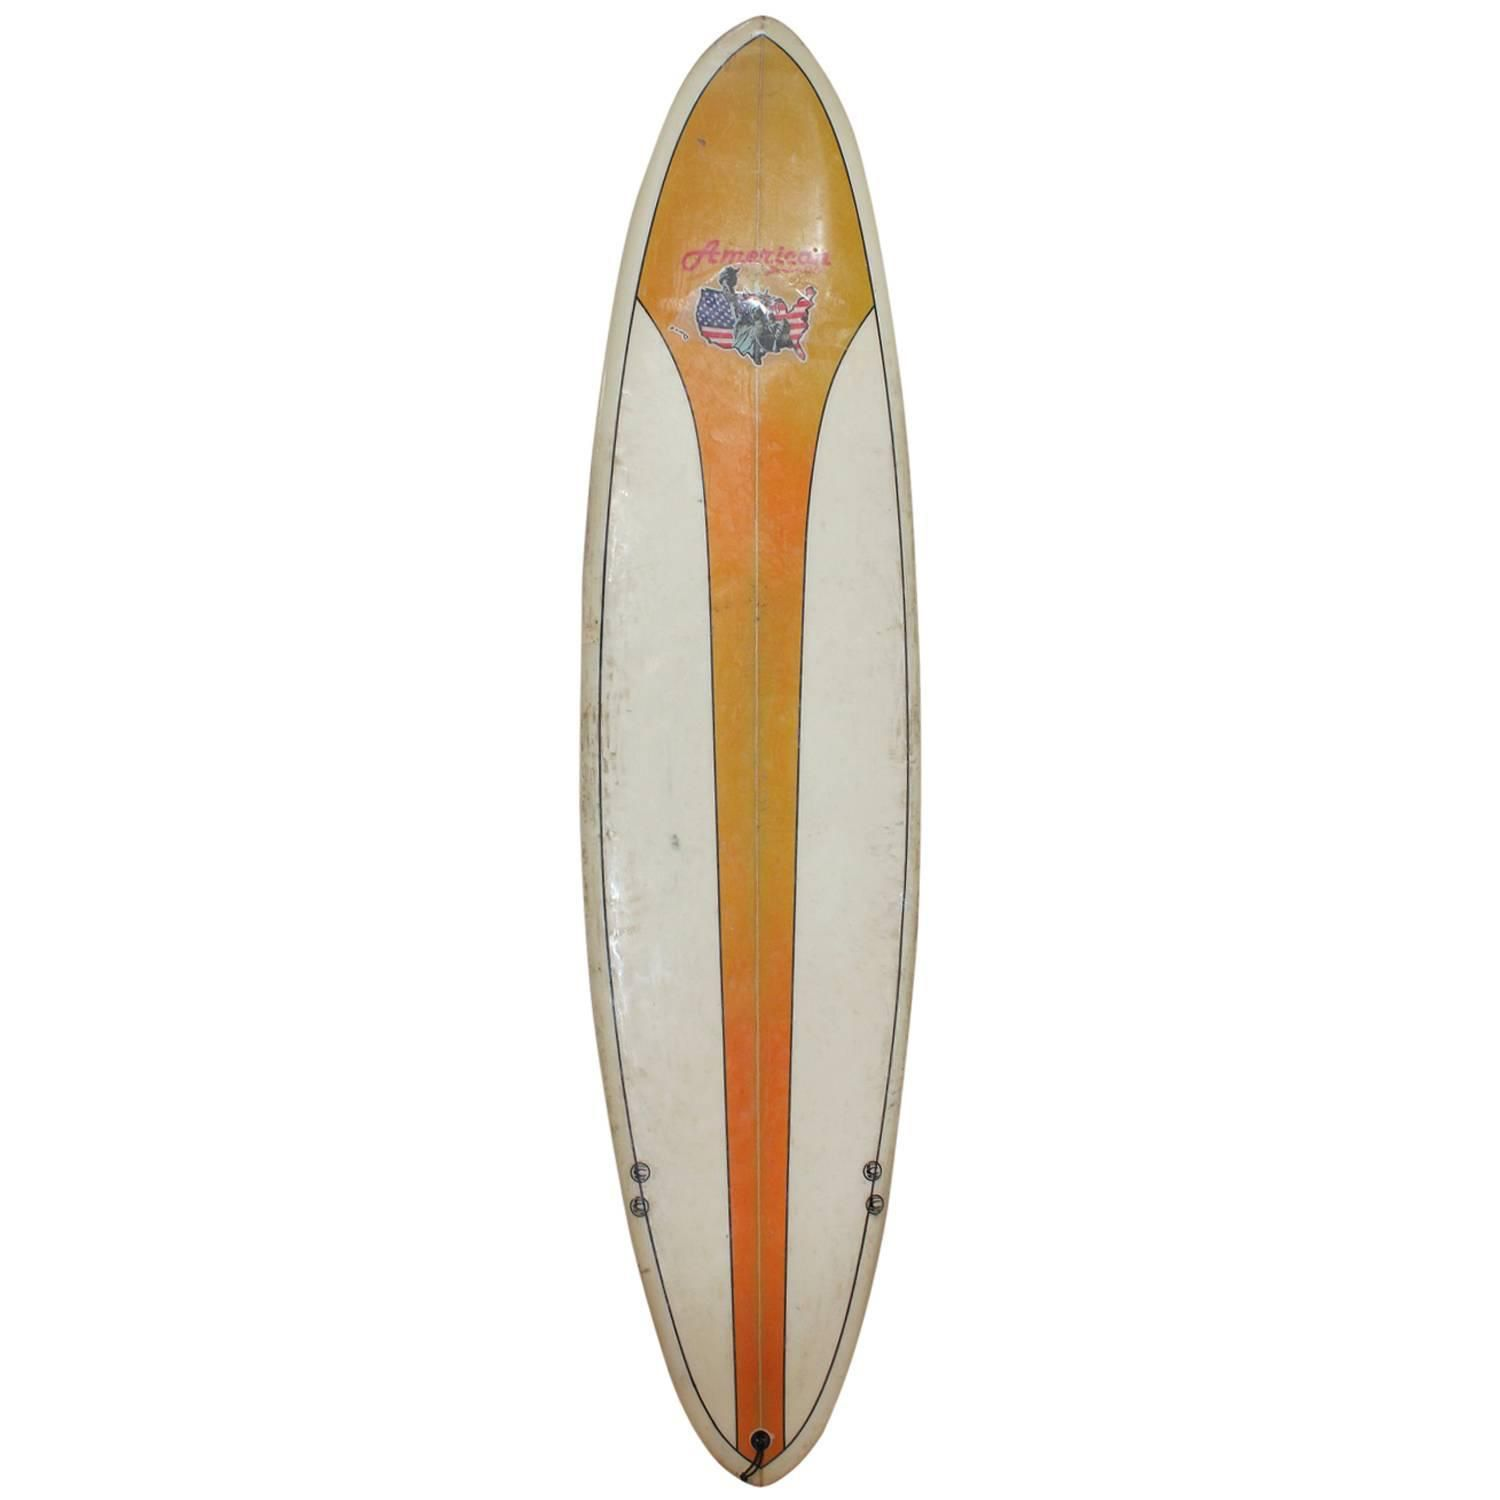 Vintage Surfboard by American Board Company | See more antique and modern Sports at https://www.1stdibs.com/furniture/more-furniture-collectibles/sports